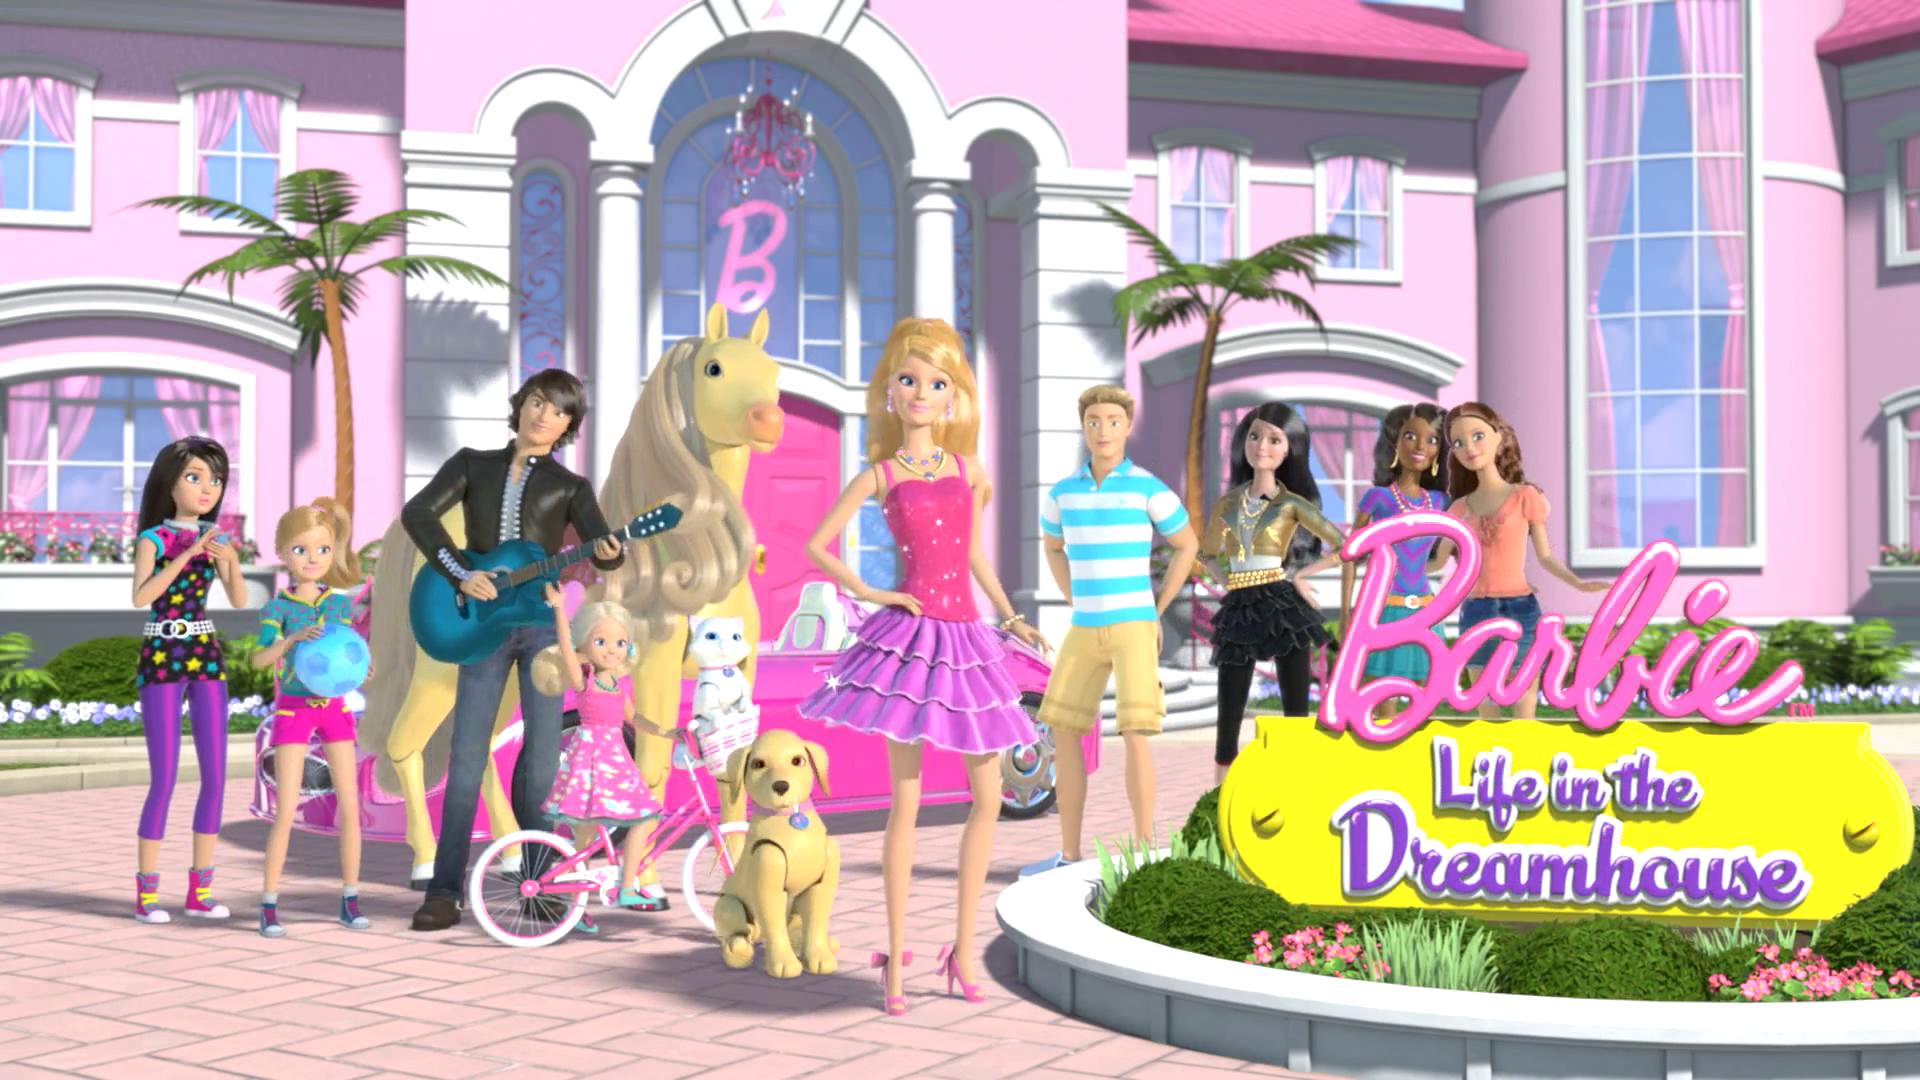 From Left To Right: Skipper, Stacie, Ryan, Chelsea, Tawny, Blissa, Taffy,  Barbie, Ken, Raquelle, Nikki And Teresa.